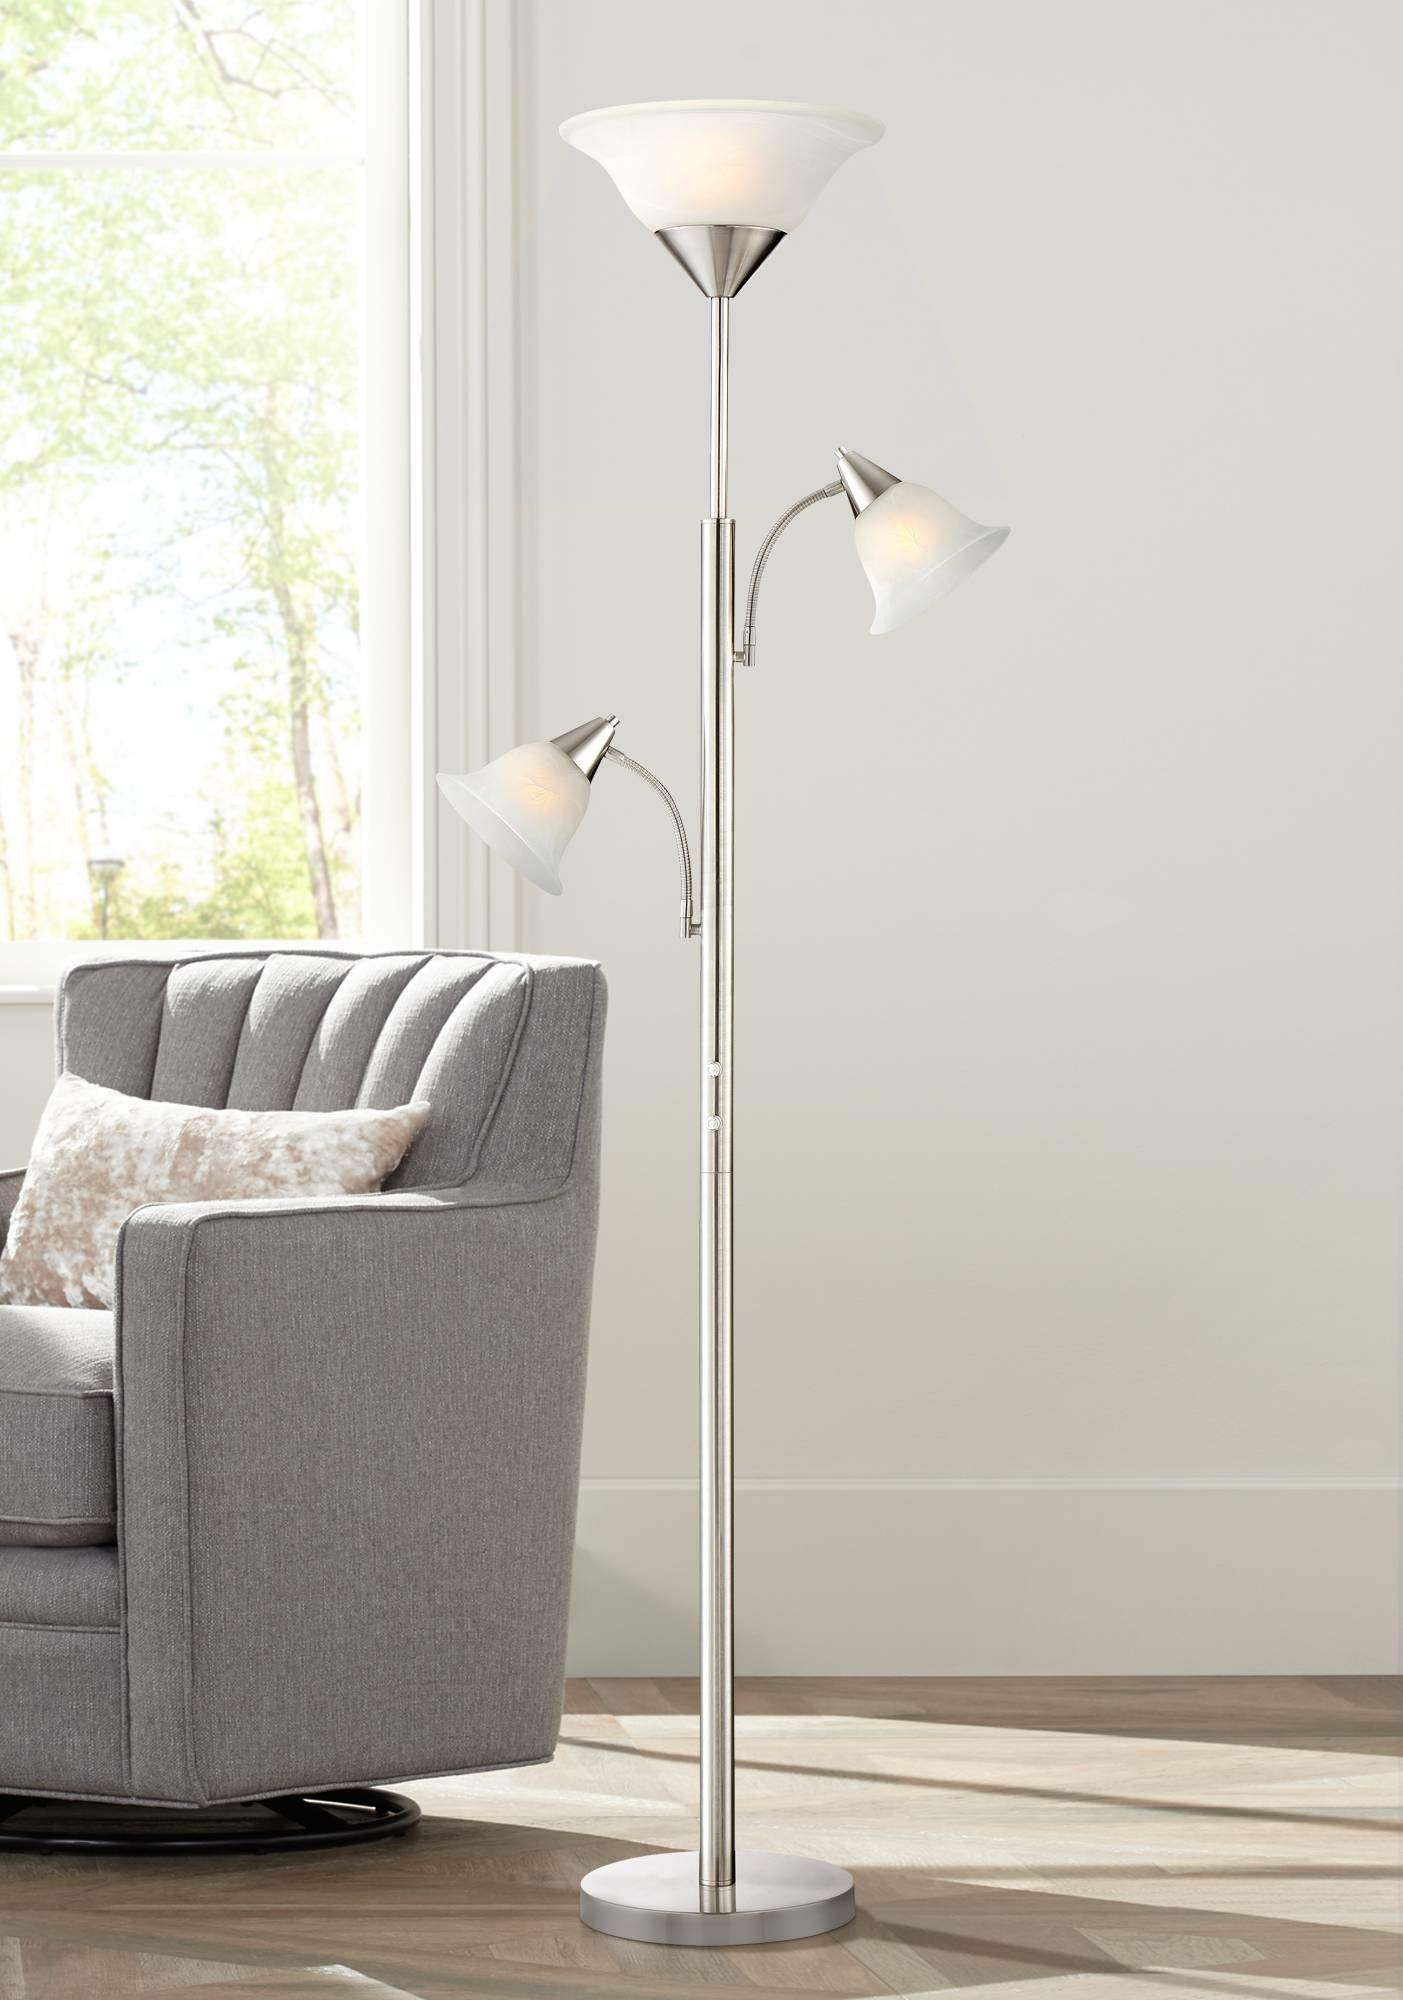 Jordan Modern Torchiere Floor Lamp 3-Light Tree Brushed Steel Alabaster Glass Shades for Living Room Reading Bedroom Office - 360 Lighting by 360 Lighting